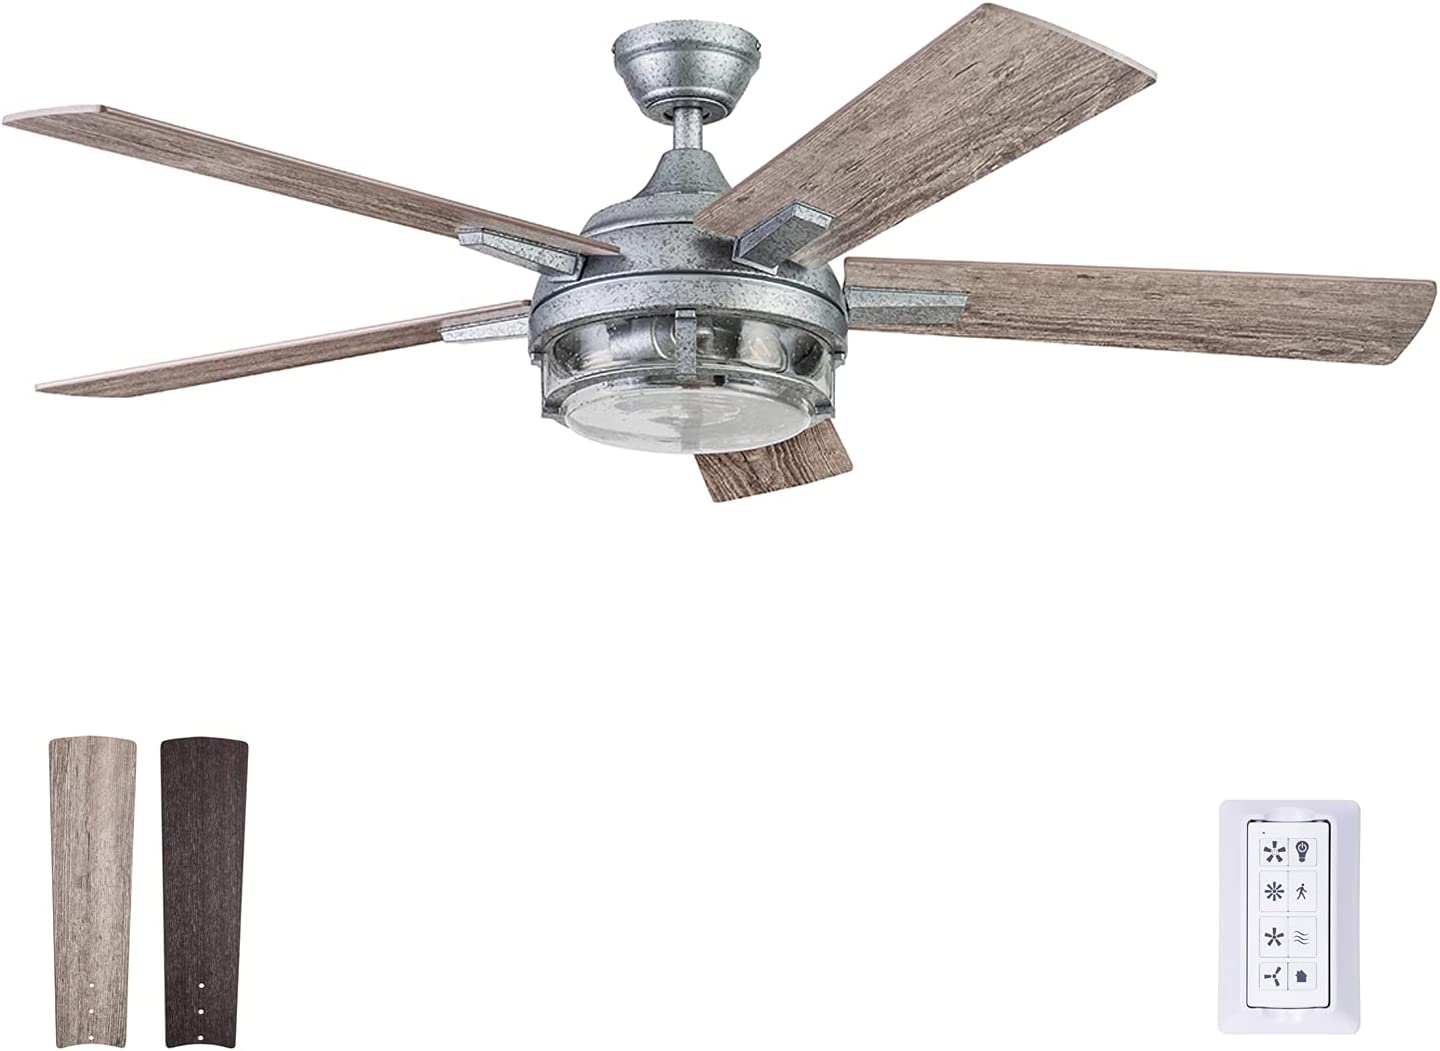 Prominence Home 51657-01 Freyr Ceiling Fan, 52, Galvanized